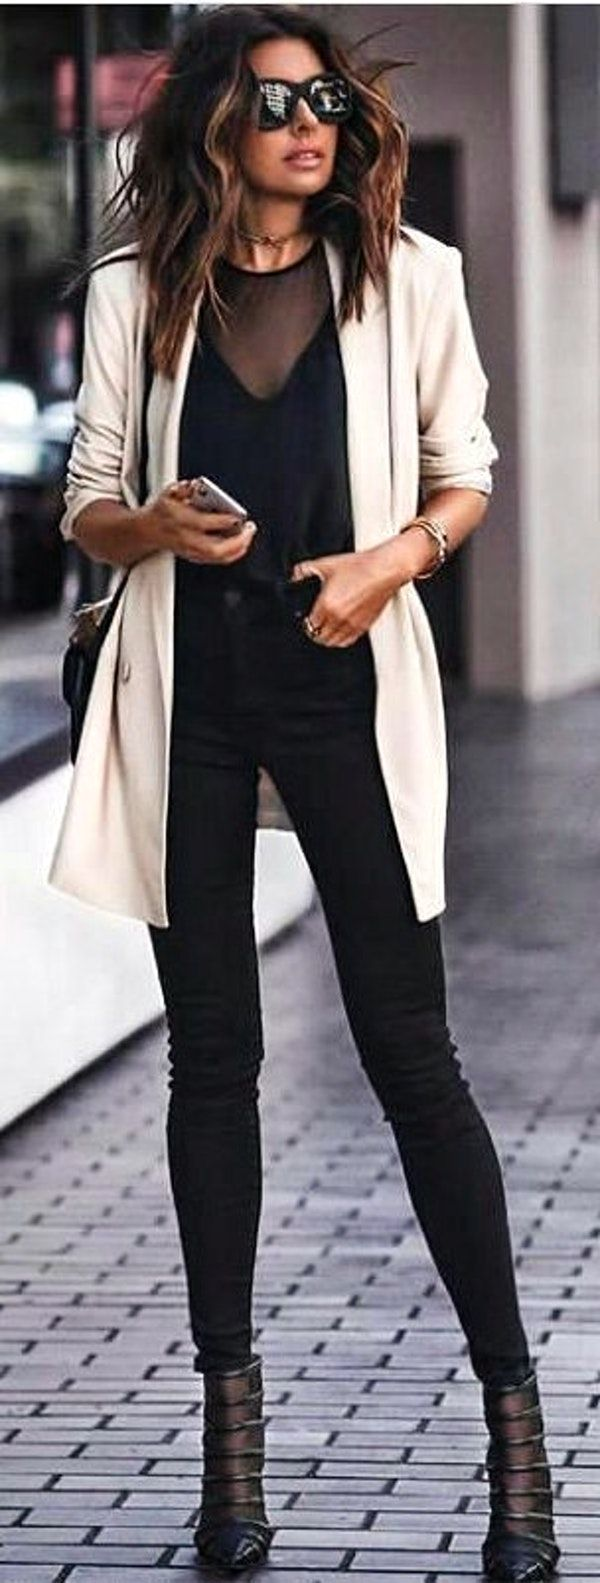 #winter #outfits  black top and black fitted jeans with white blazer. Pic by @newyork_streetstyles.